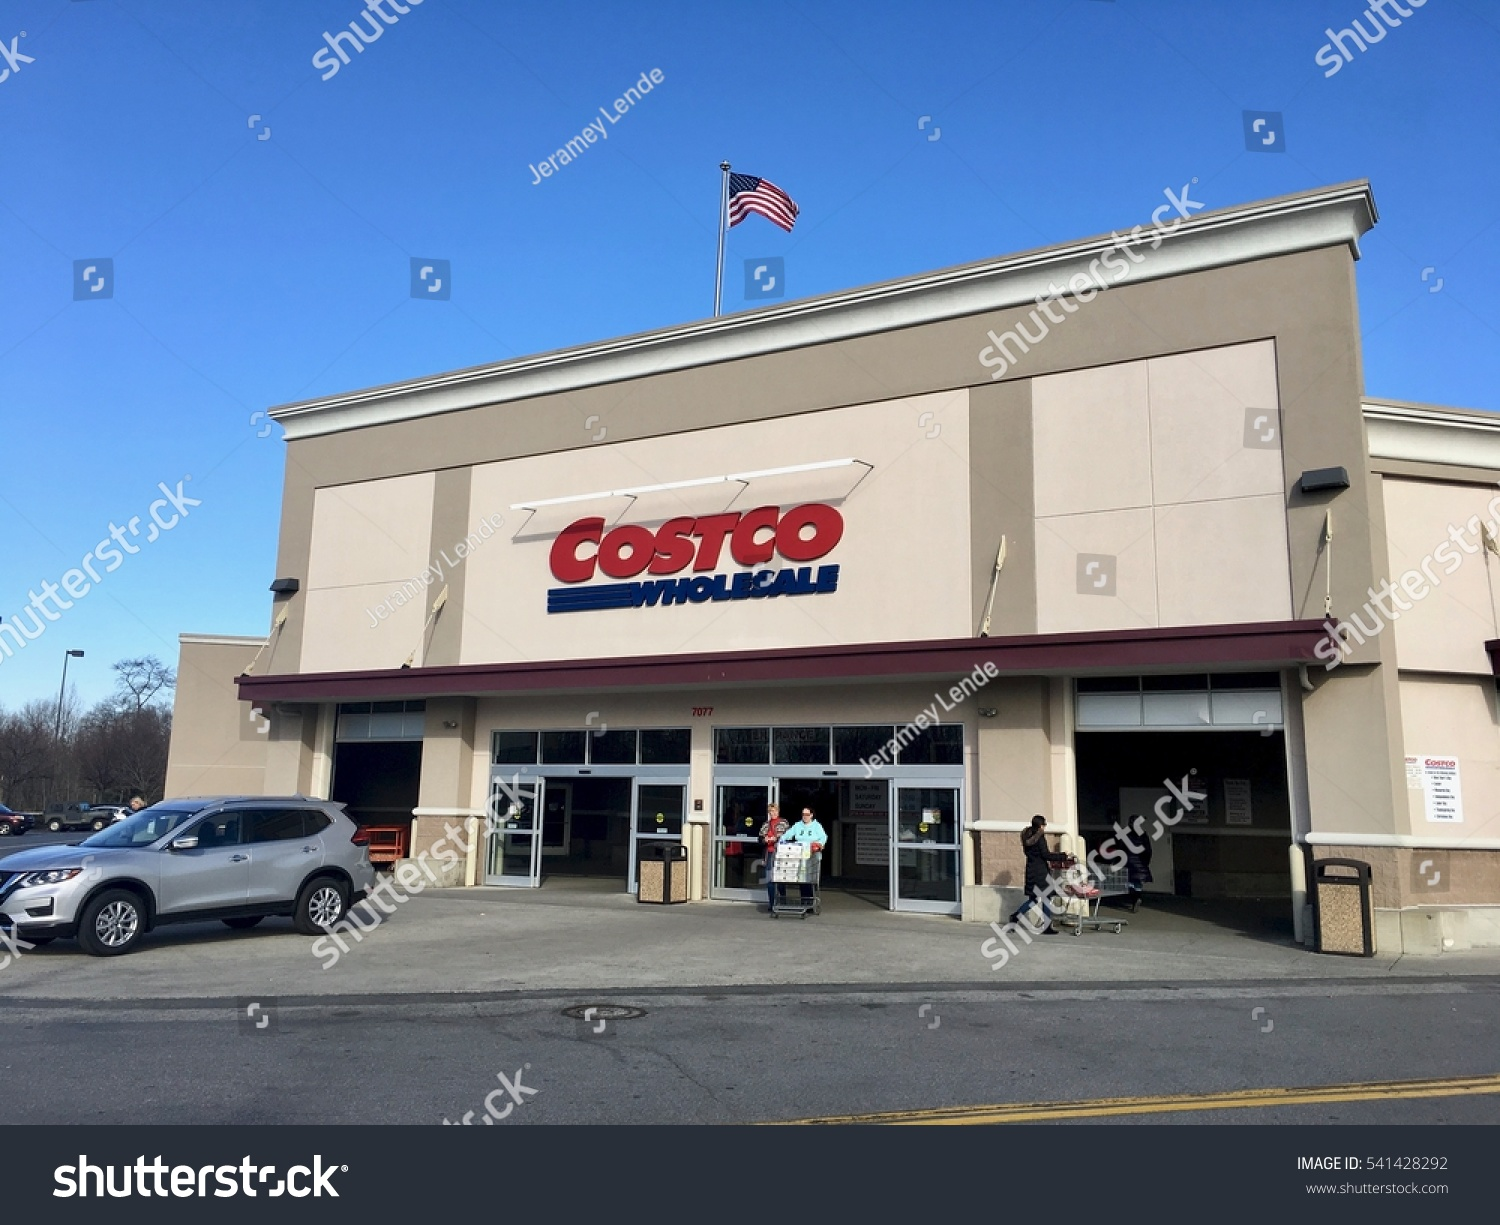 costco search photostok stock image images photos hanover usa 22 2016 the storefront of a costco whole store